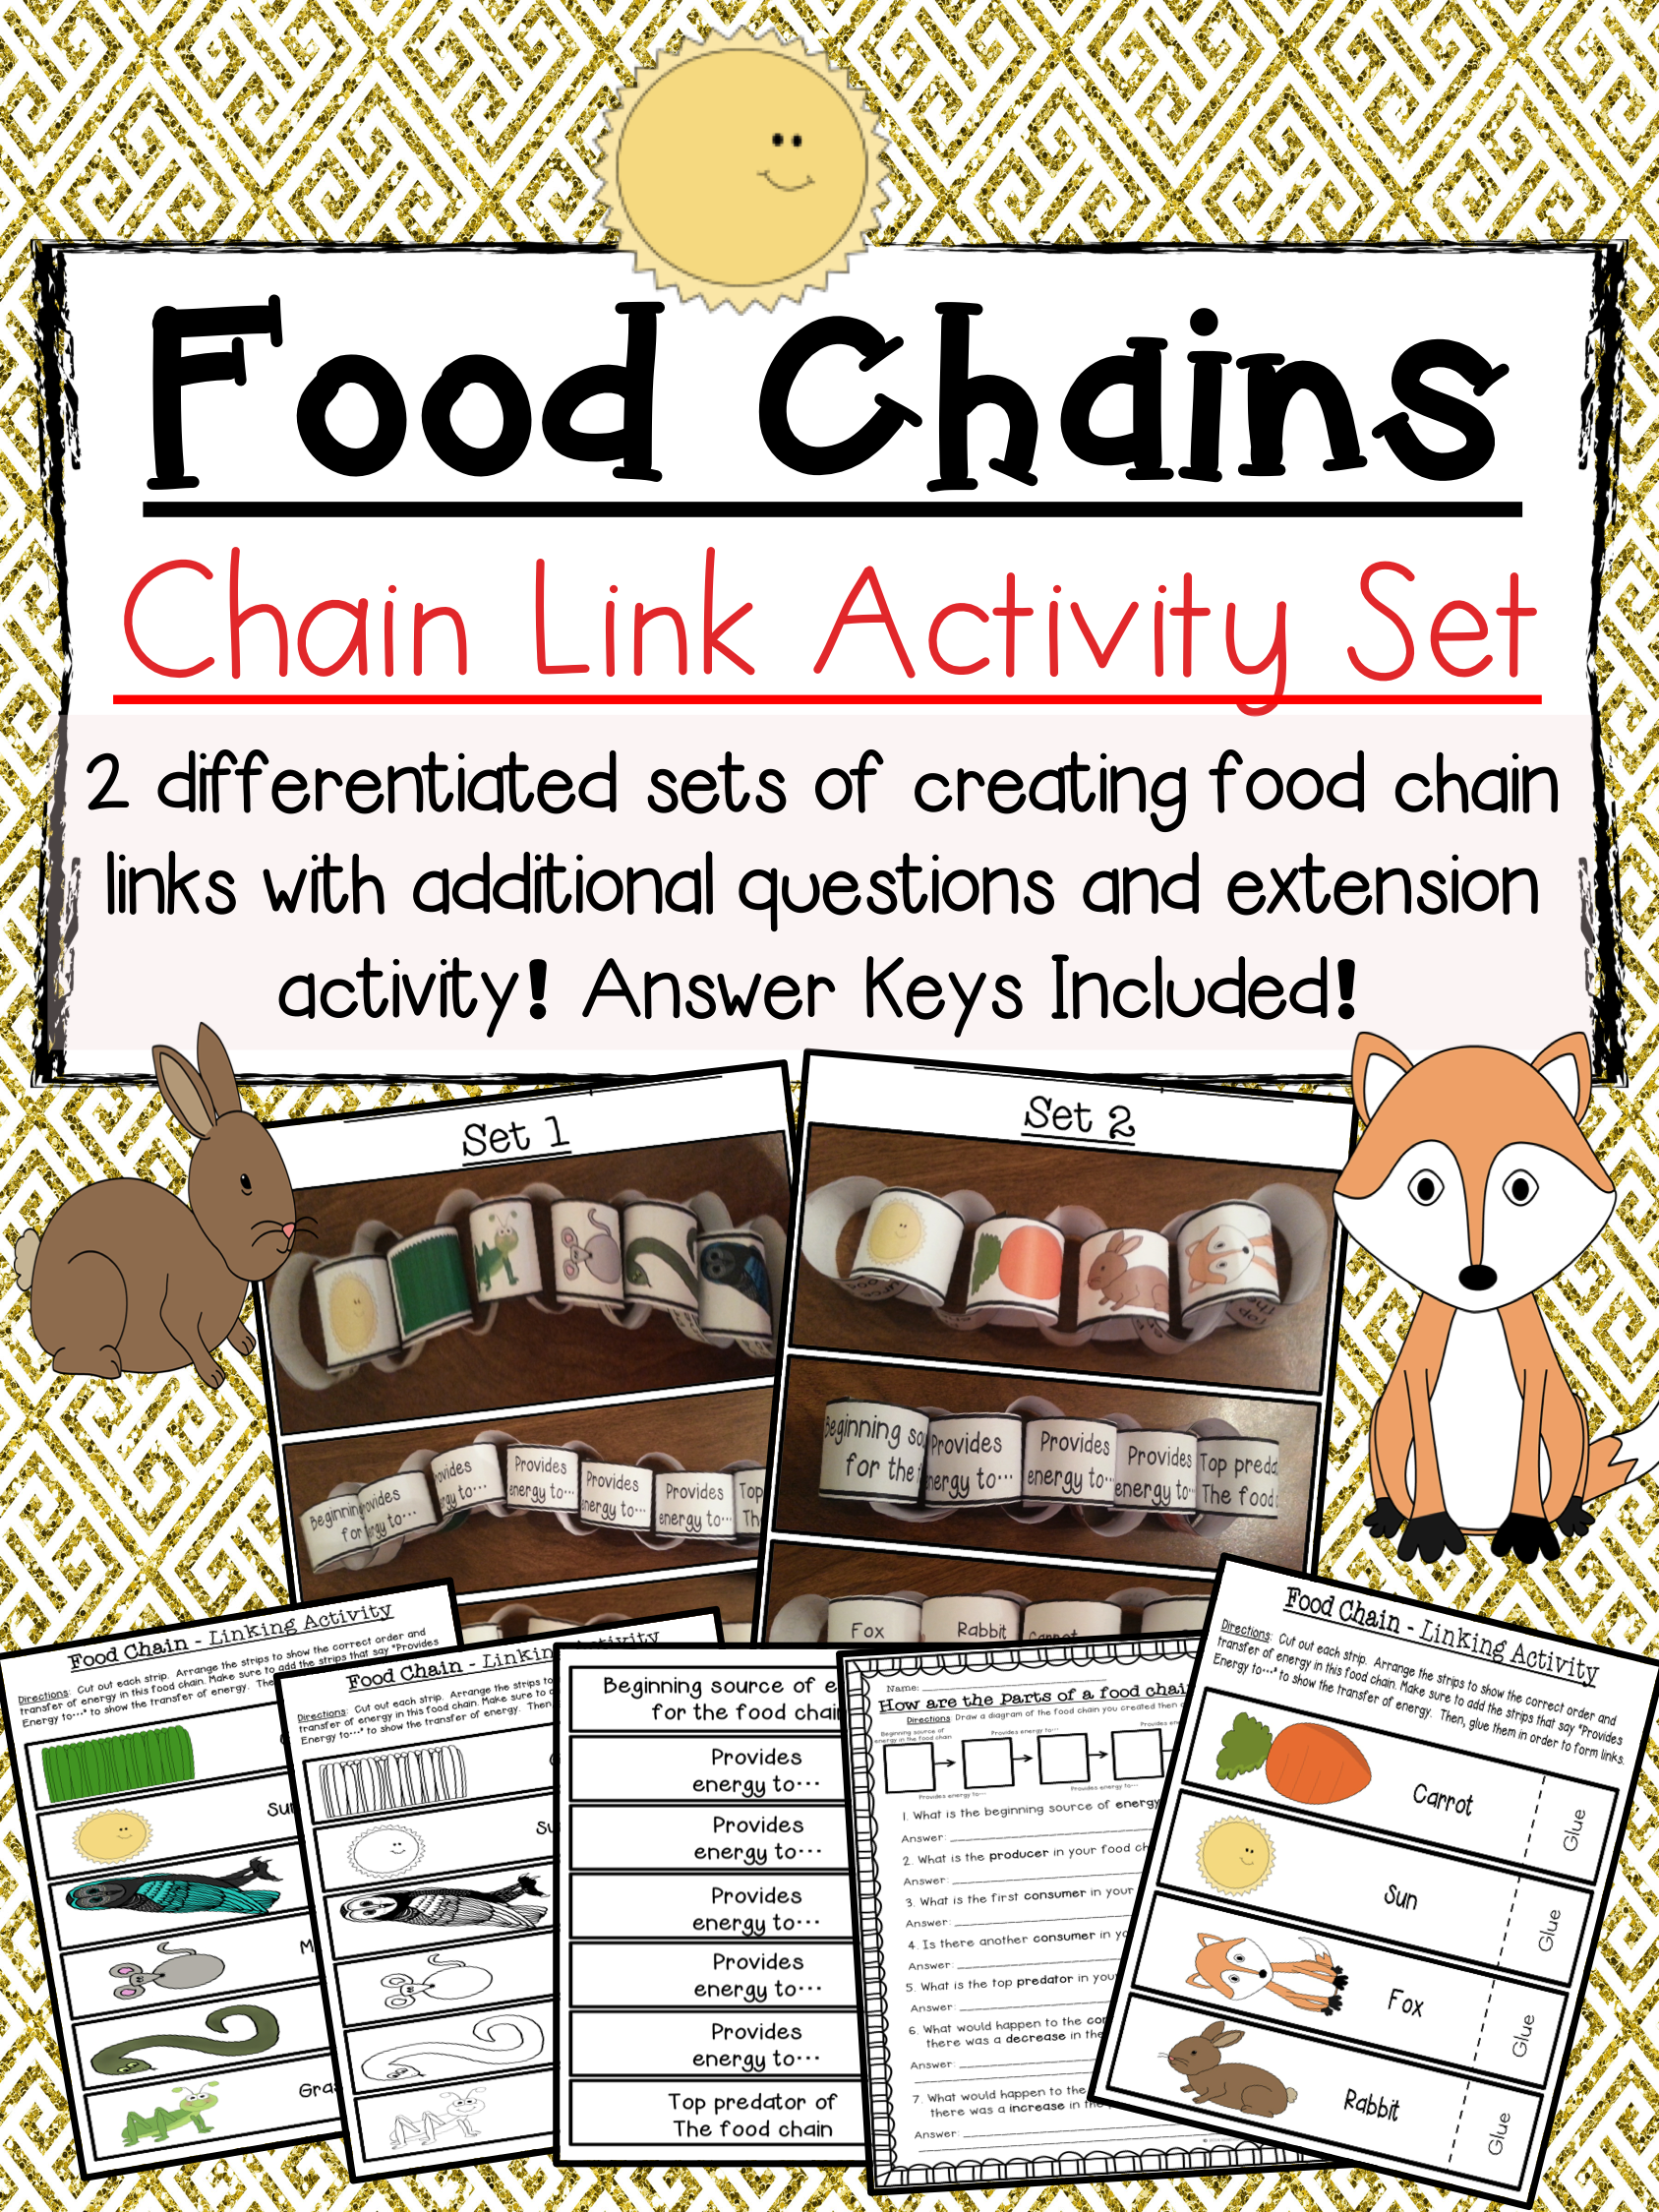 Food Chain Links Activity Set   Science lessons ...